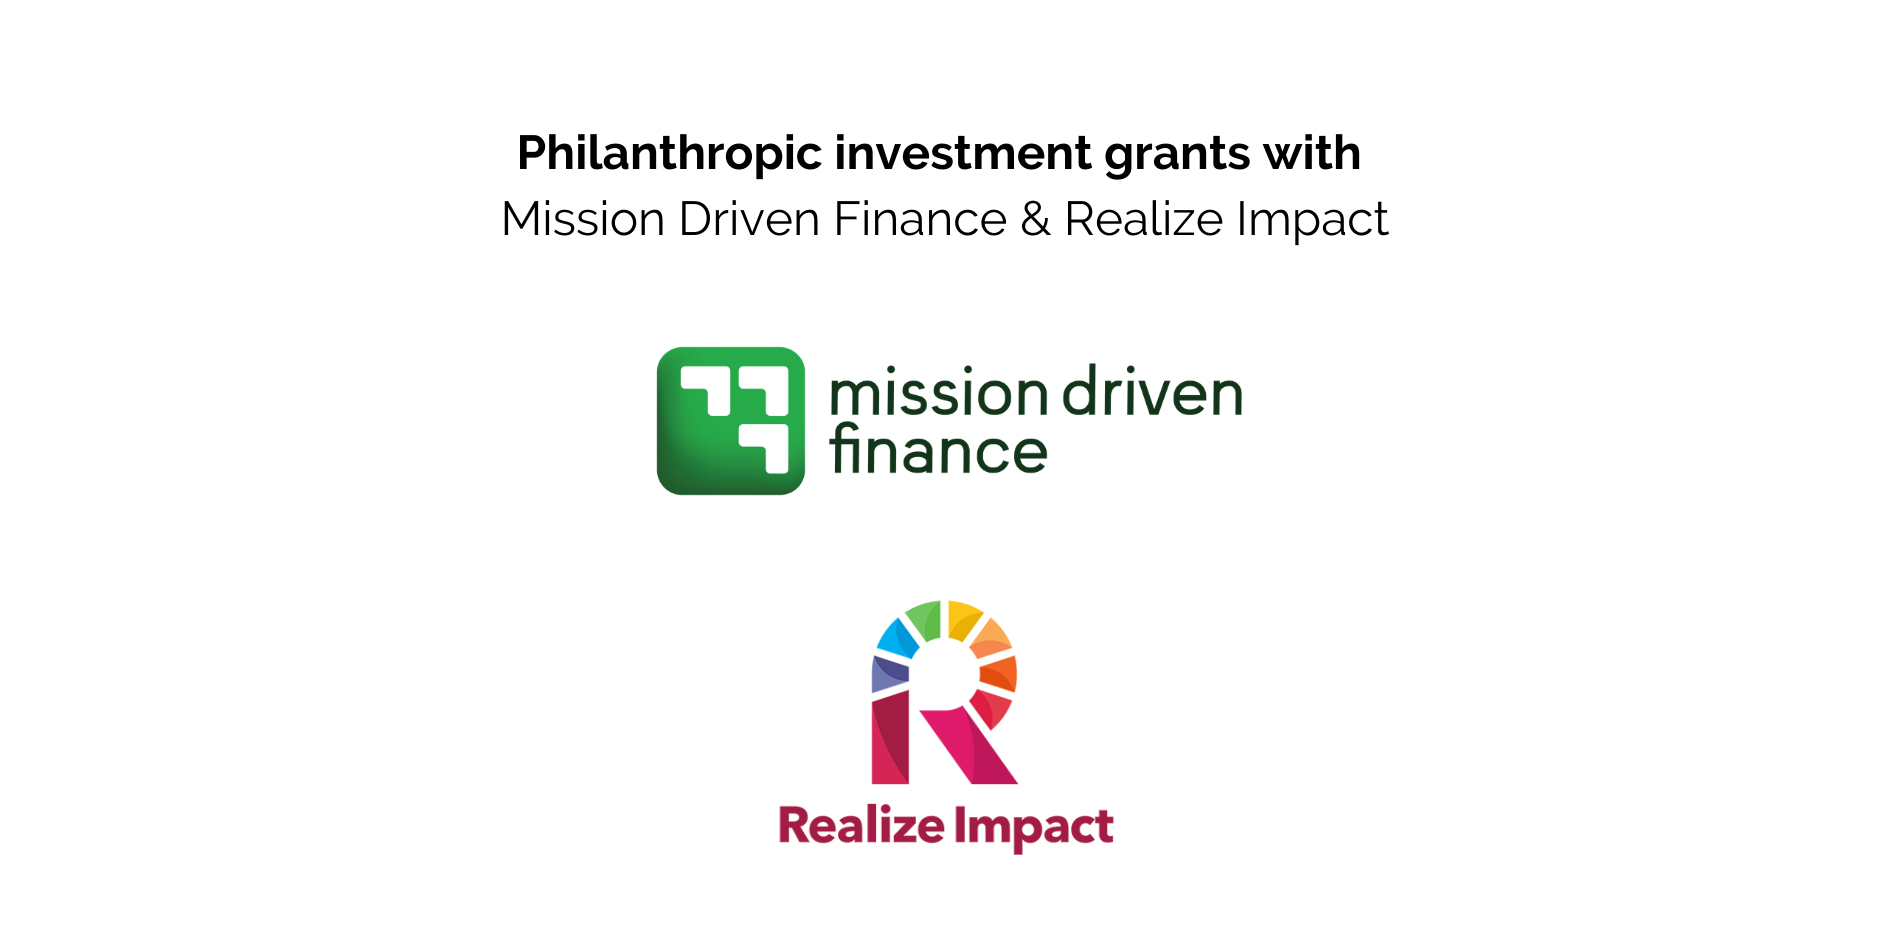 Now is the time to try philanthropic investing